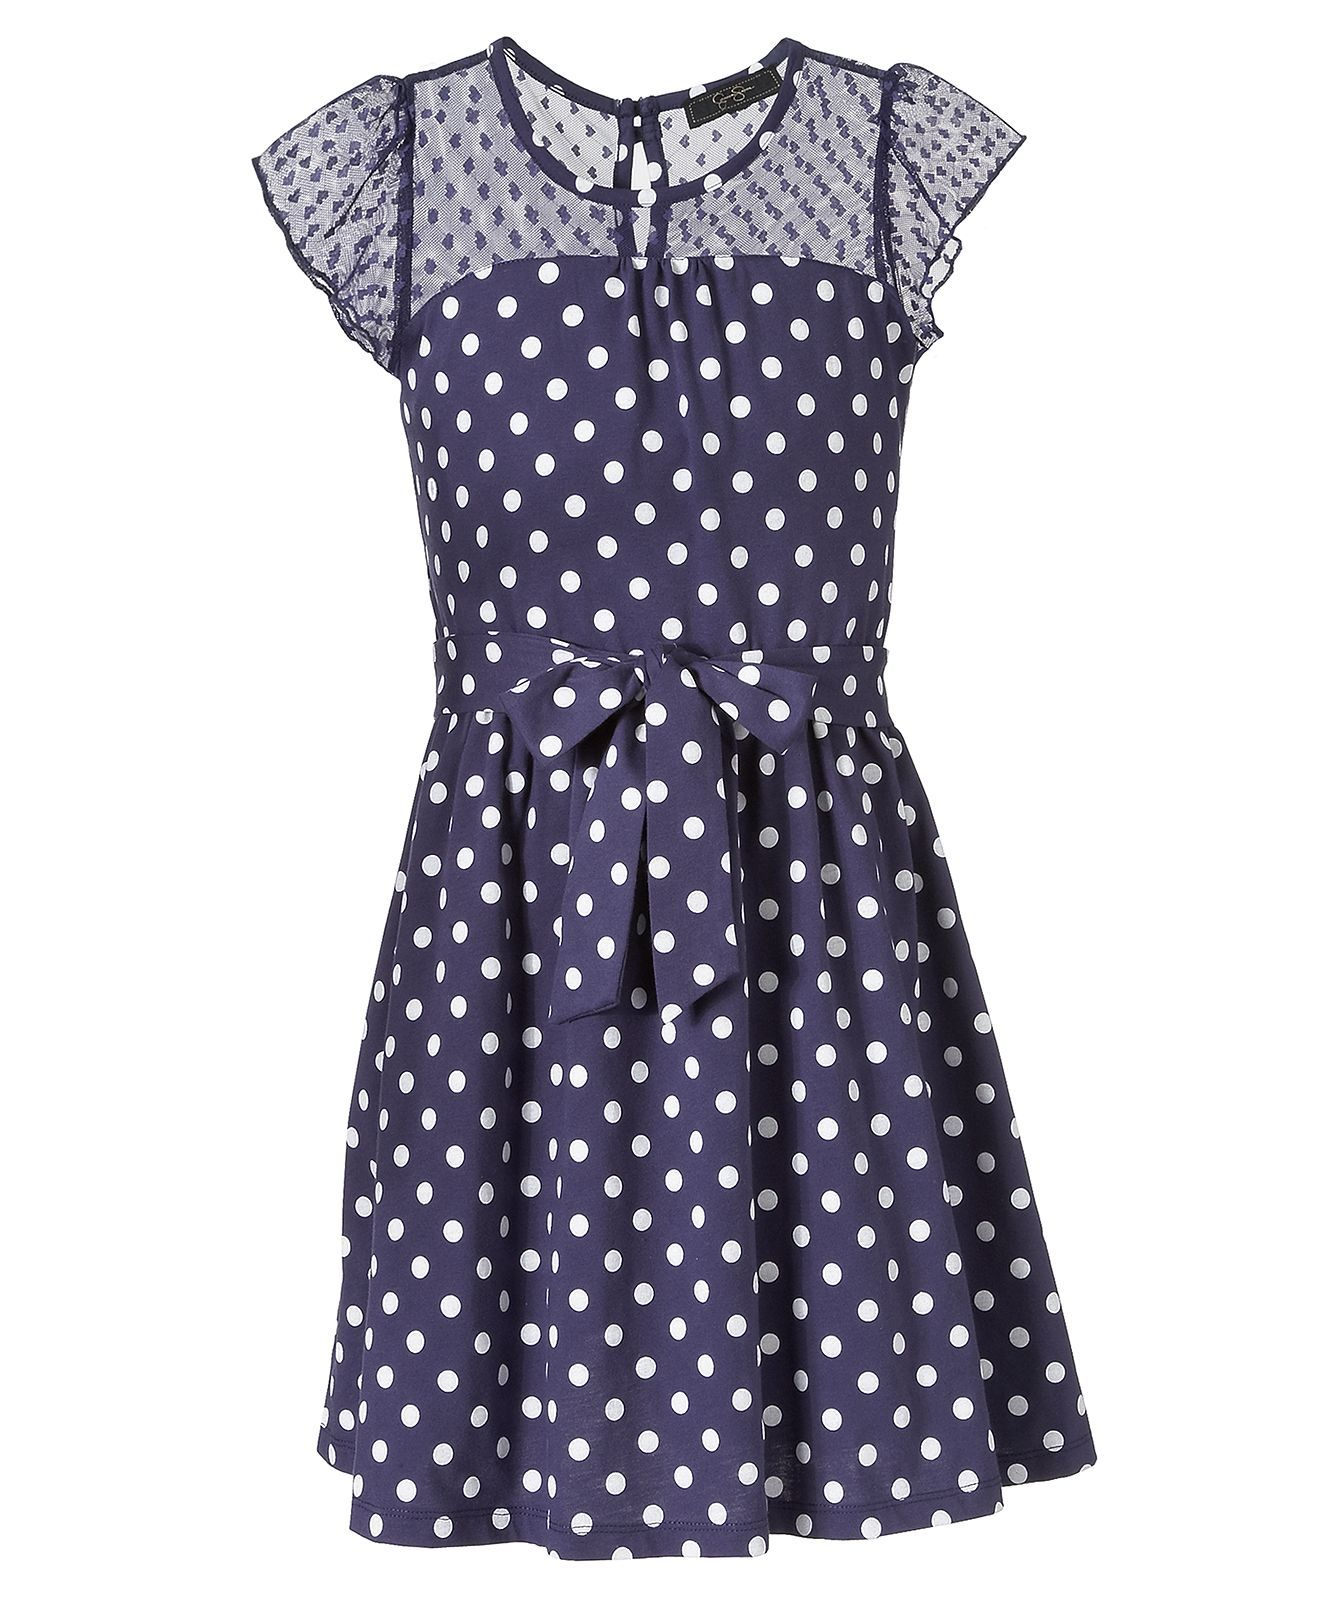 Jessica Simpson Girls Dress, Girls Flutter-Sleeved Dot Dress - Kids ...